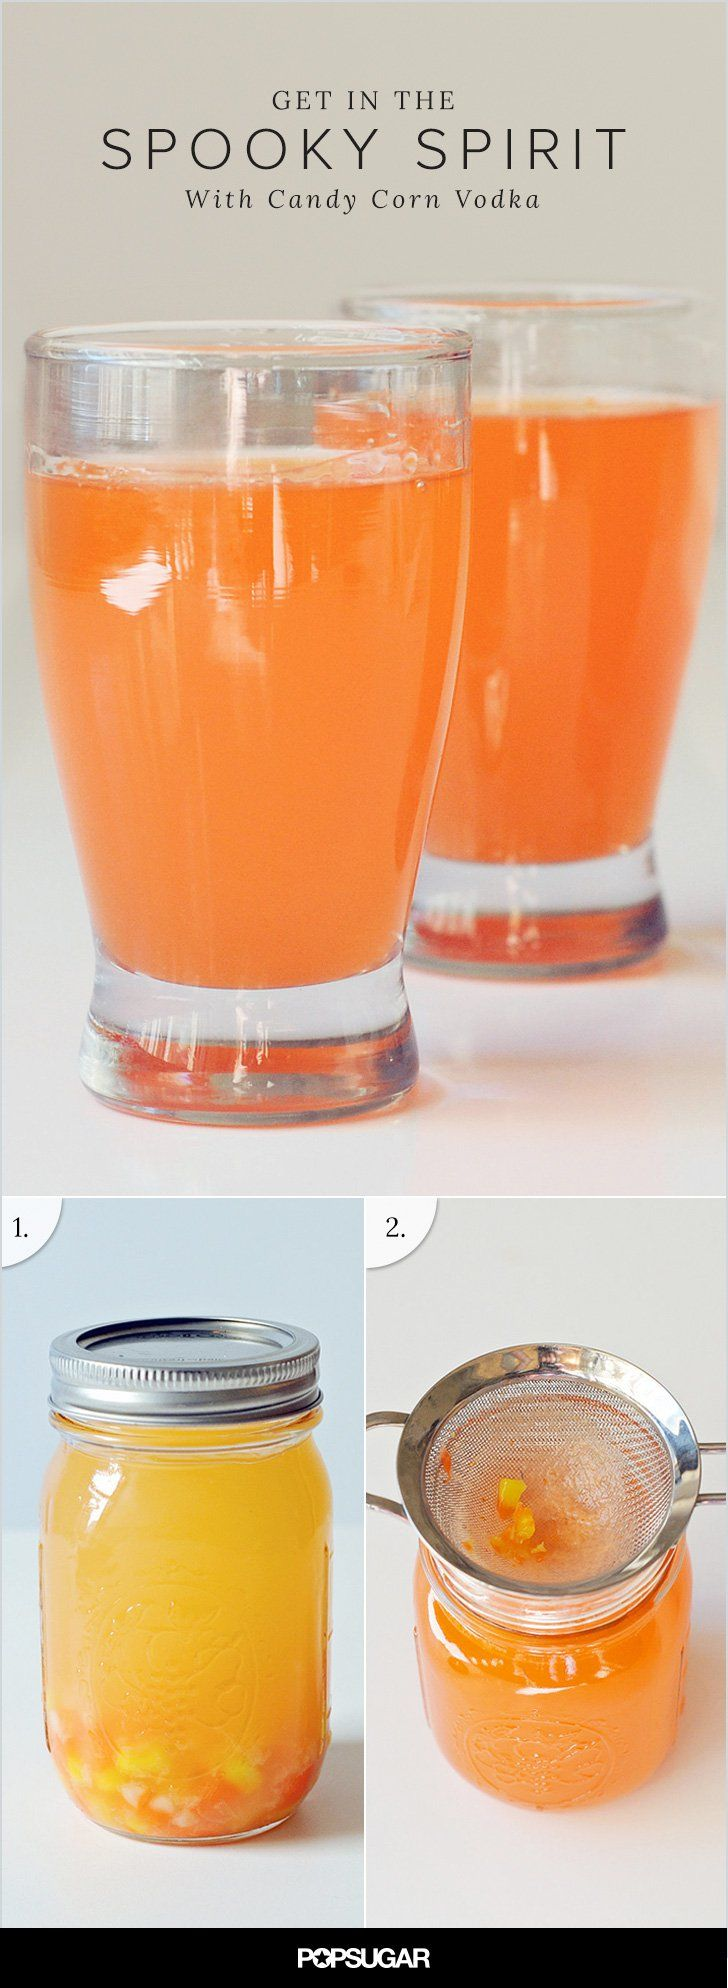 Pin for Later: Get in the Spooky Spirit With Candy Corn Vodka